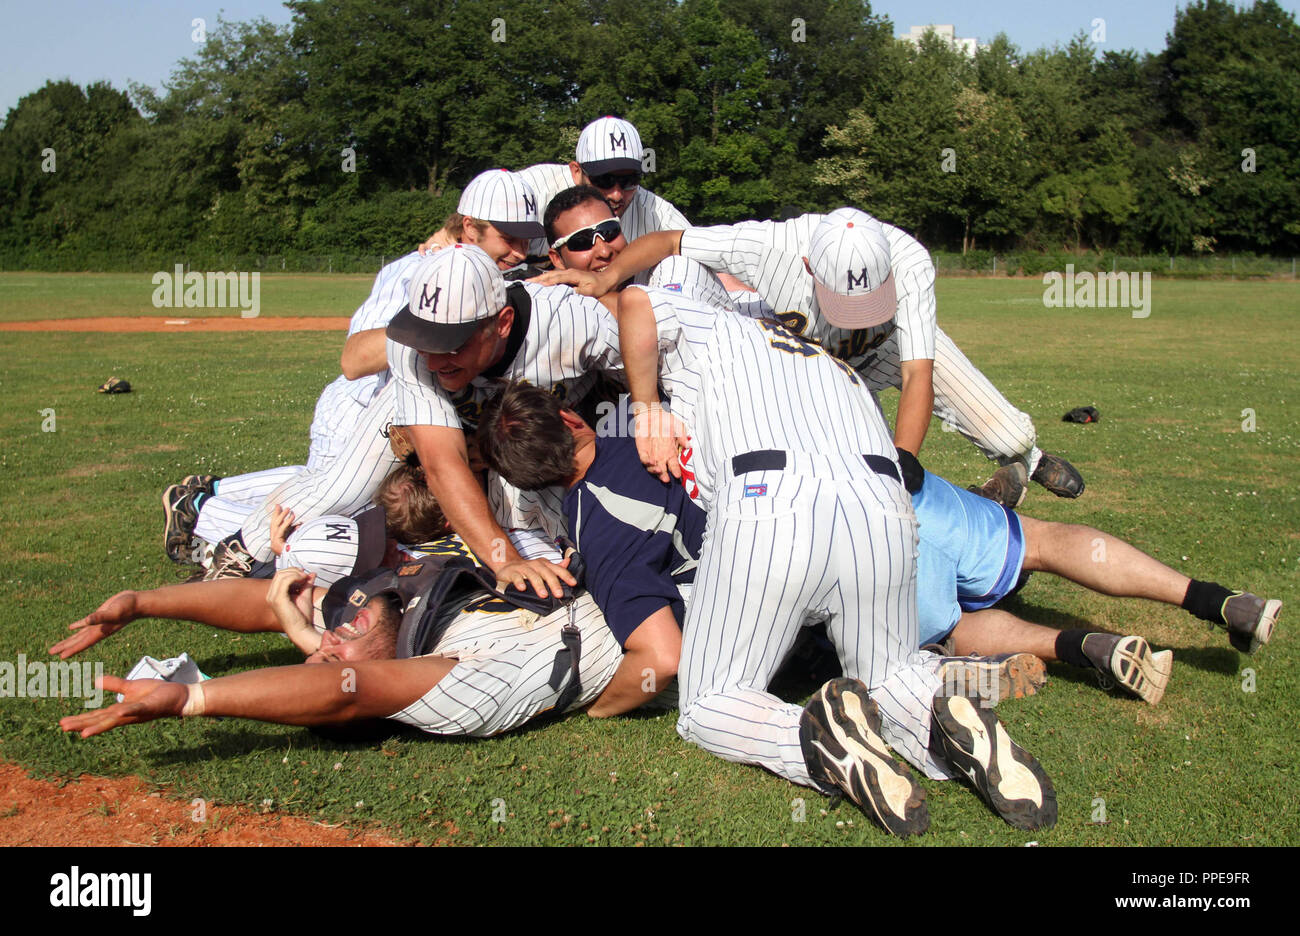 Exultation at the baseball regional league team Munich Caribes after the match against the Gauting Indians. The Caribes won with 5:3 and 7:1 and thus secured the Regionalliga Championship and promotion to the 2nd Bundesliga. - Stock Image